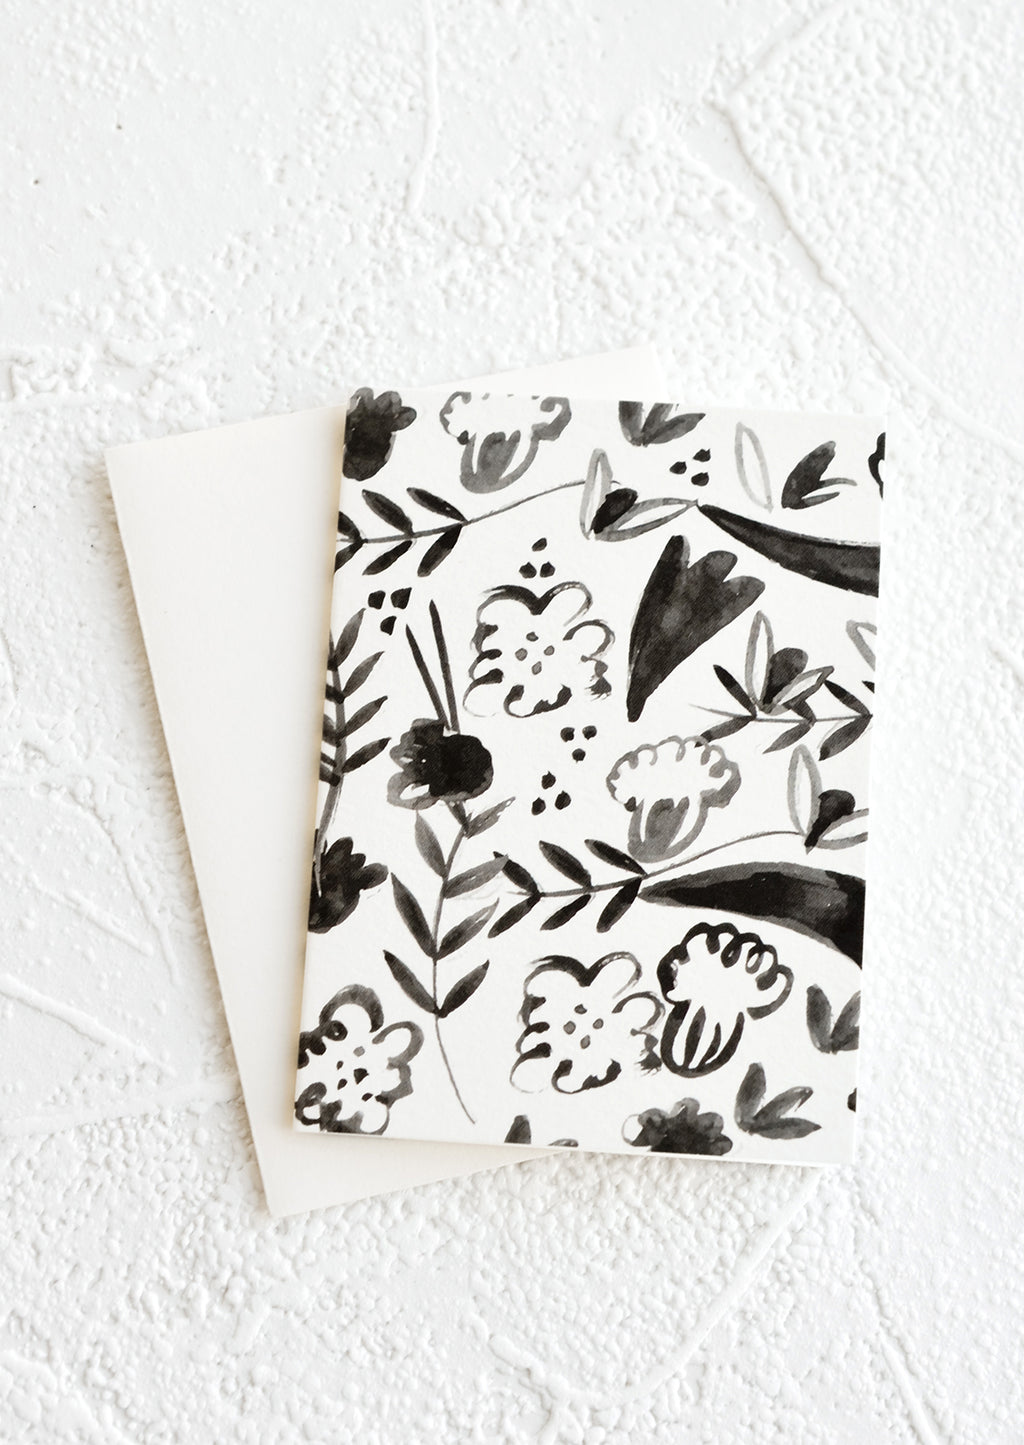 Black Fleurs: A gift enclosure greeting card with a black and white floral print.